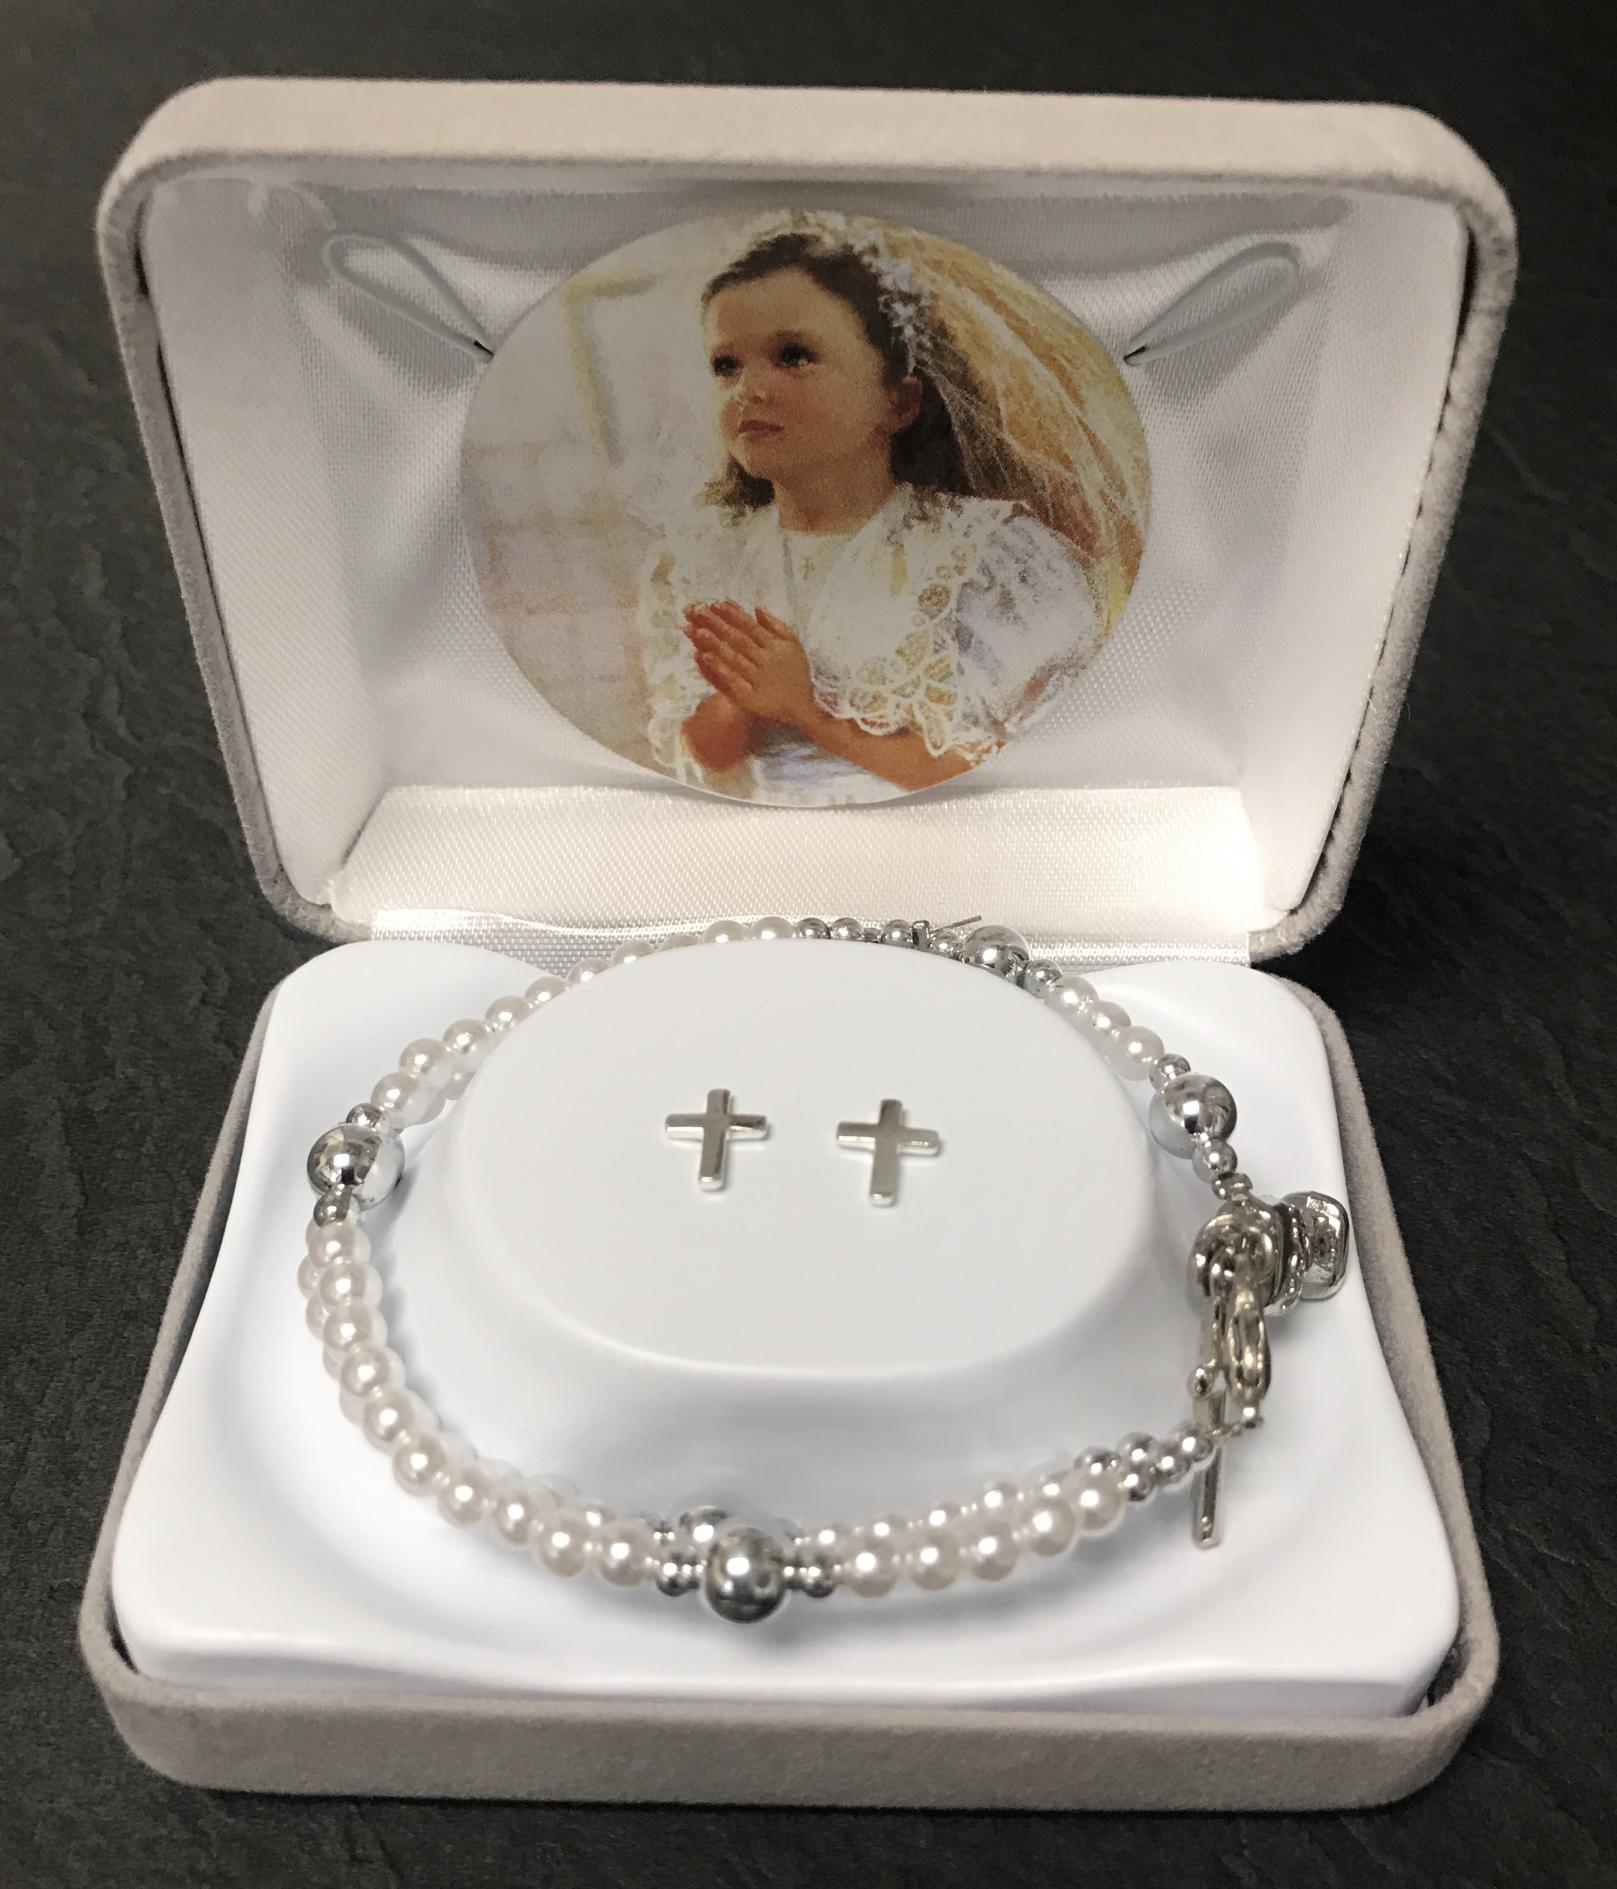 PEARL 59 BEAD FC BRACELET WITH EARRINGS GIFT BOXED